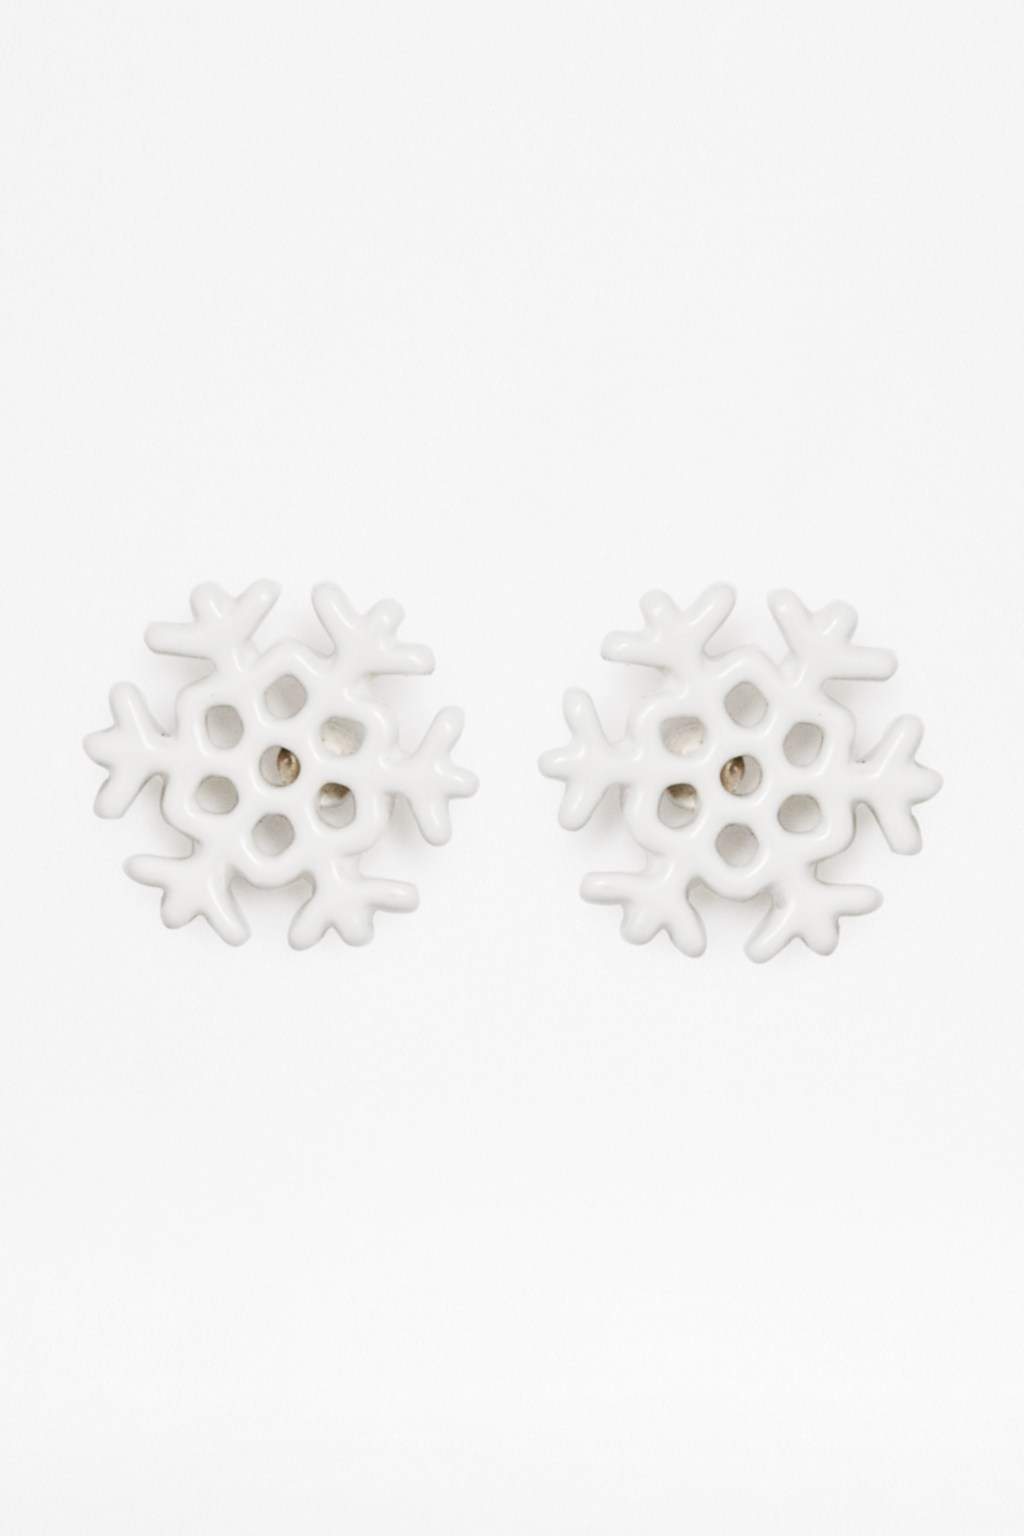 snowflake stud earrings accessories connection